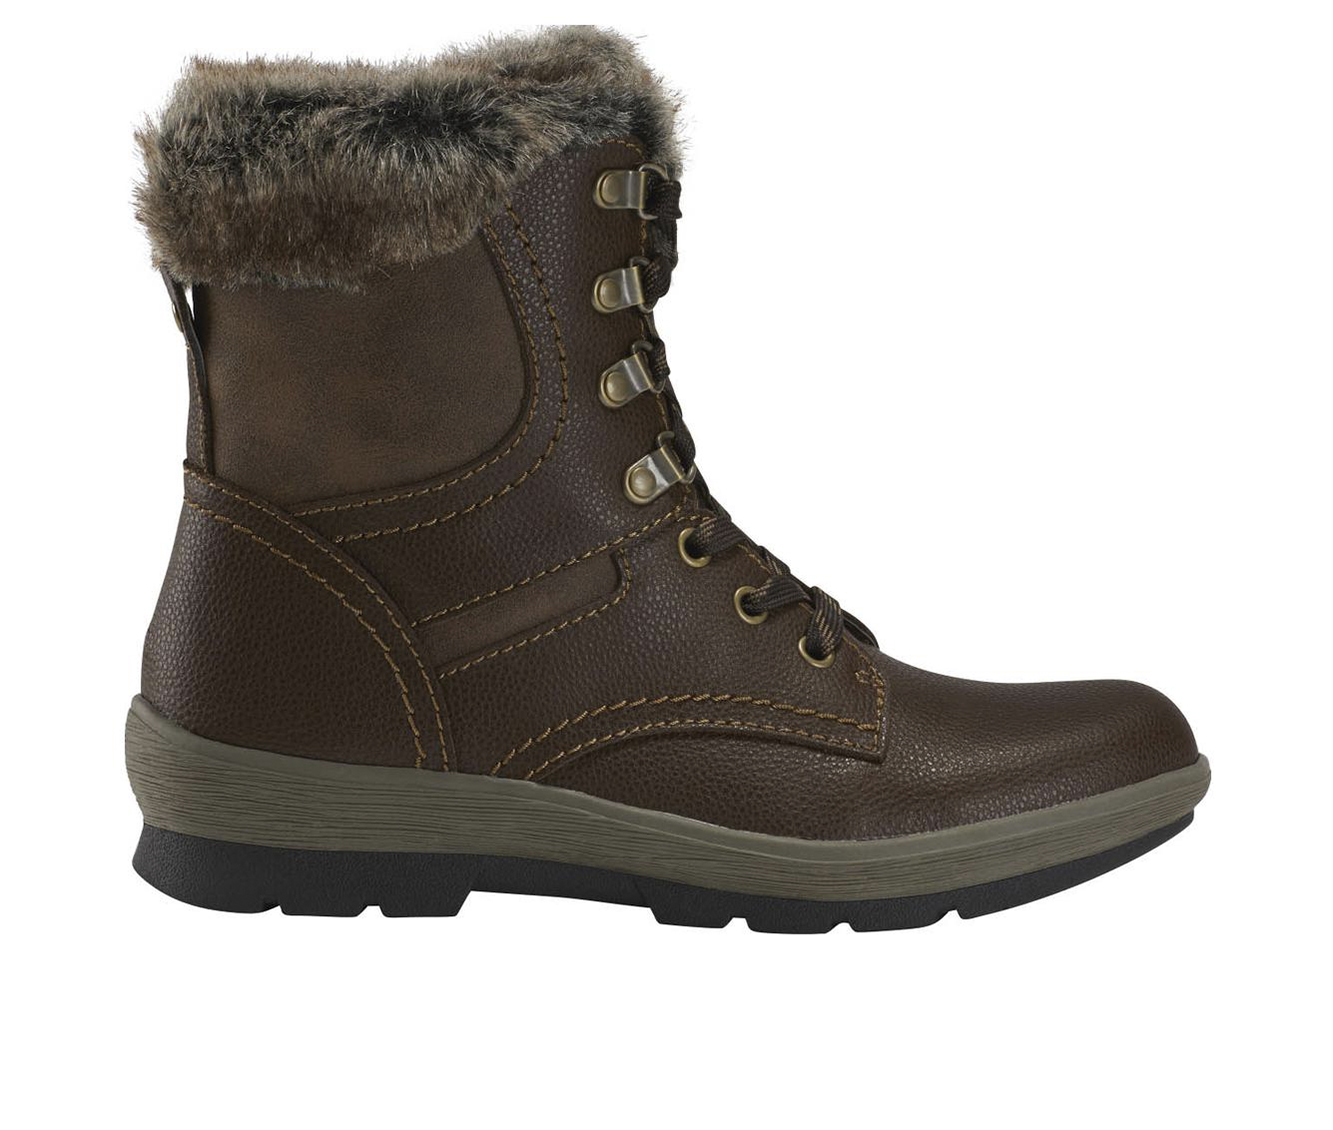 Earth Origins Sherpa Serenity Women's Boot (Brown Leather)